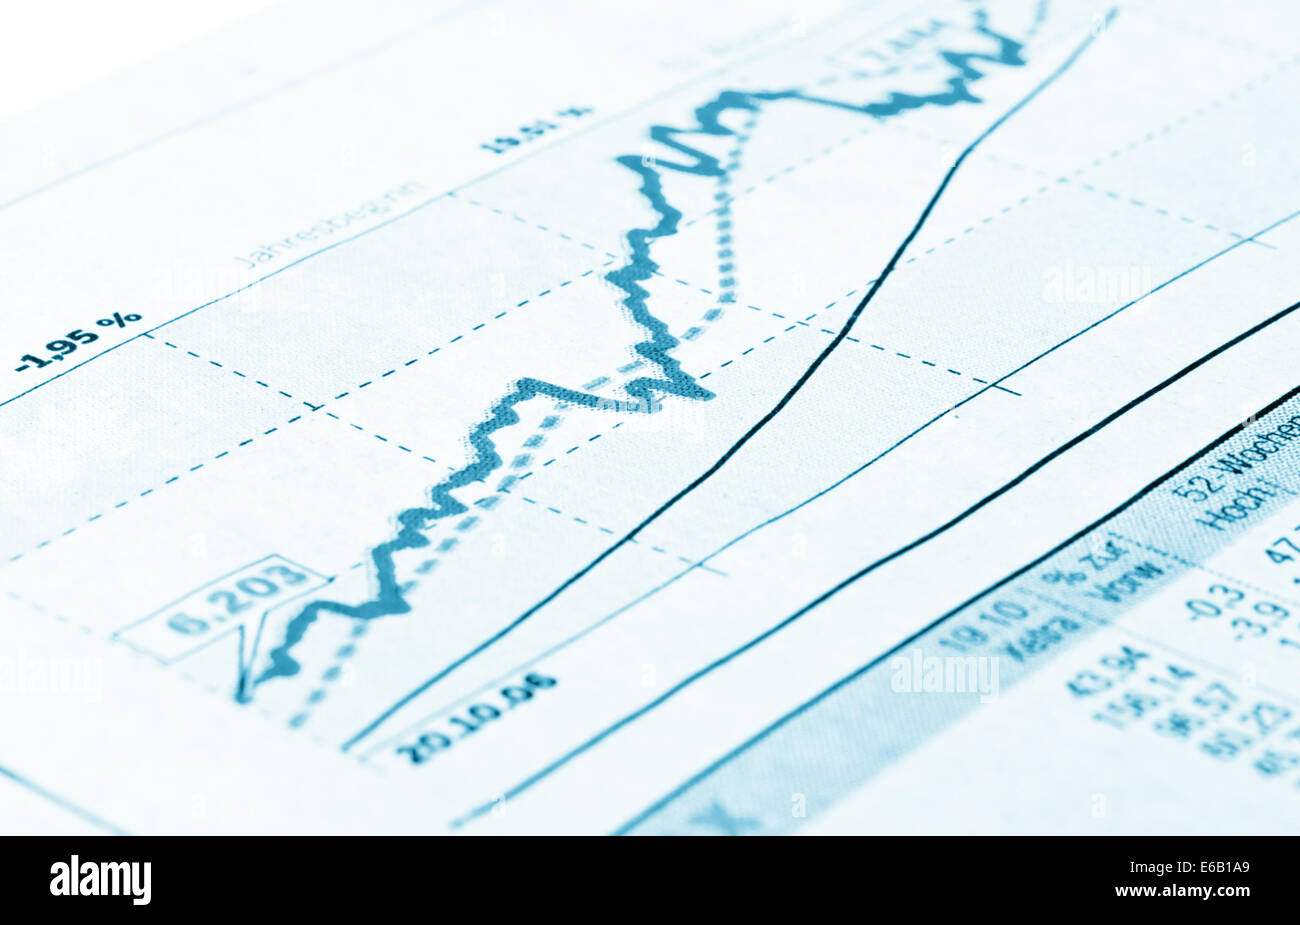 stock exchange,stock price,chart,performance - Stock Image